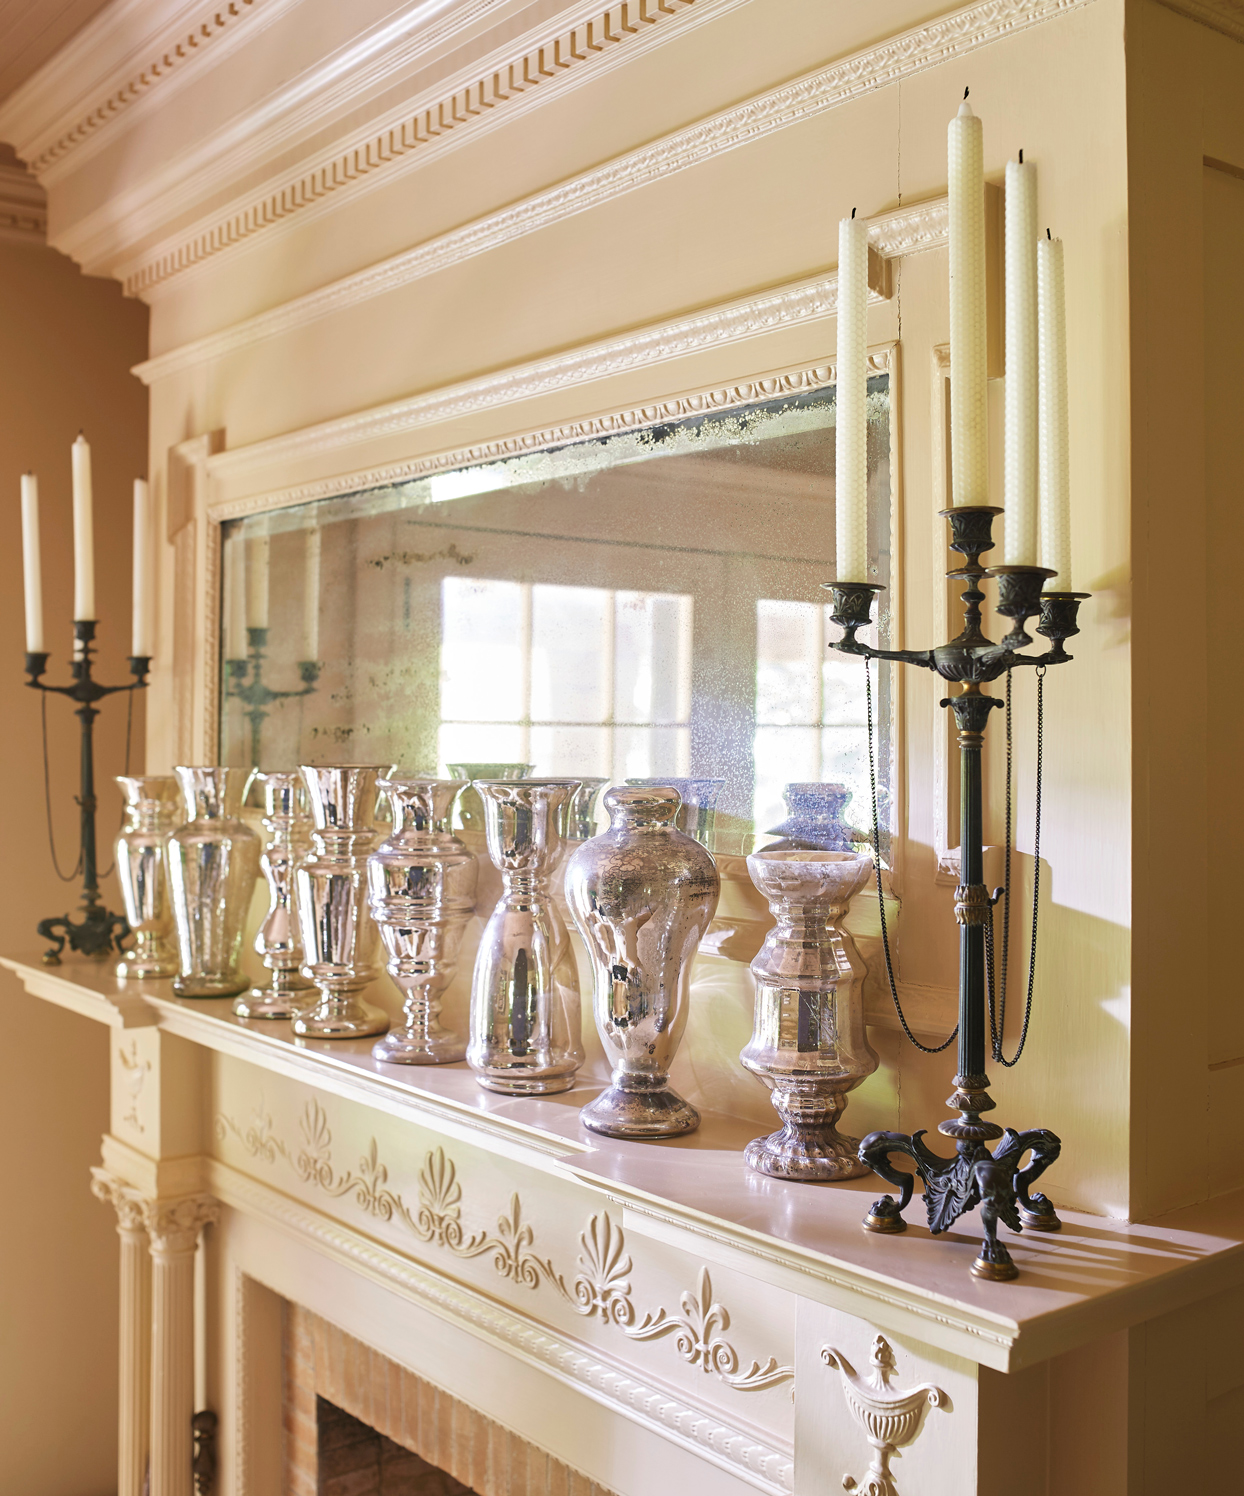 collection of mercury-glass vases line the living-room mantel